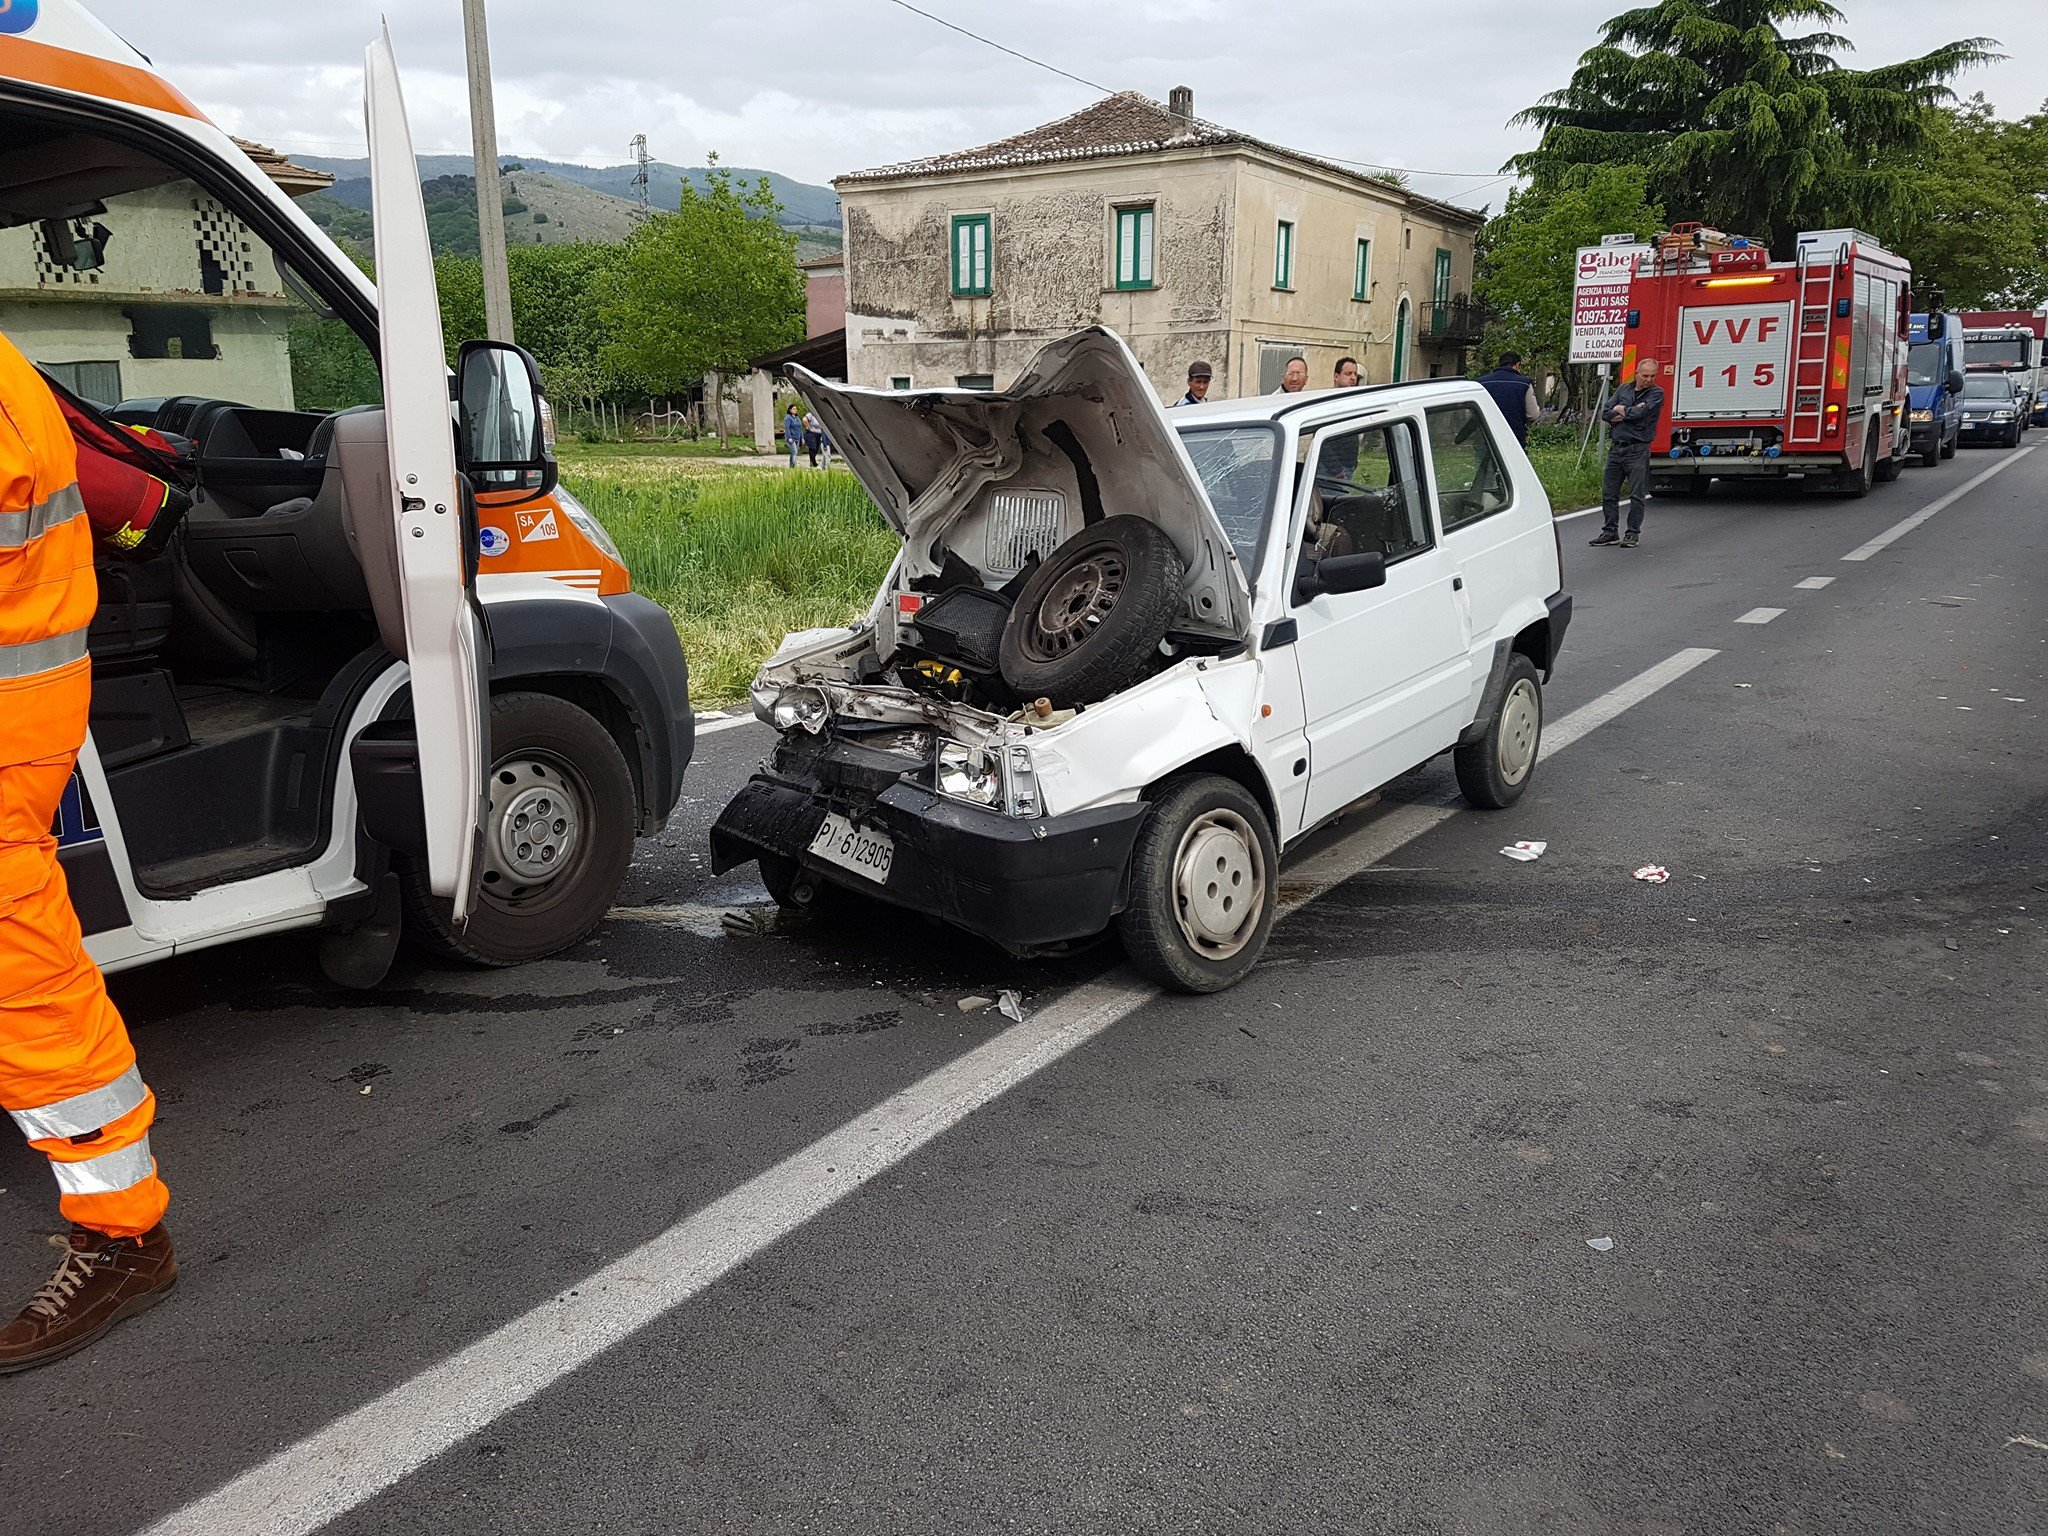 Grave incidente frontale, due feriti